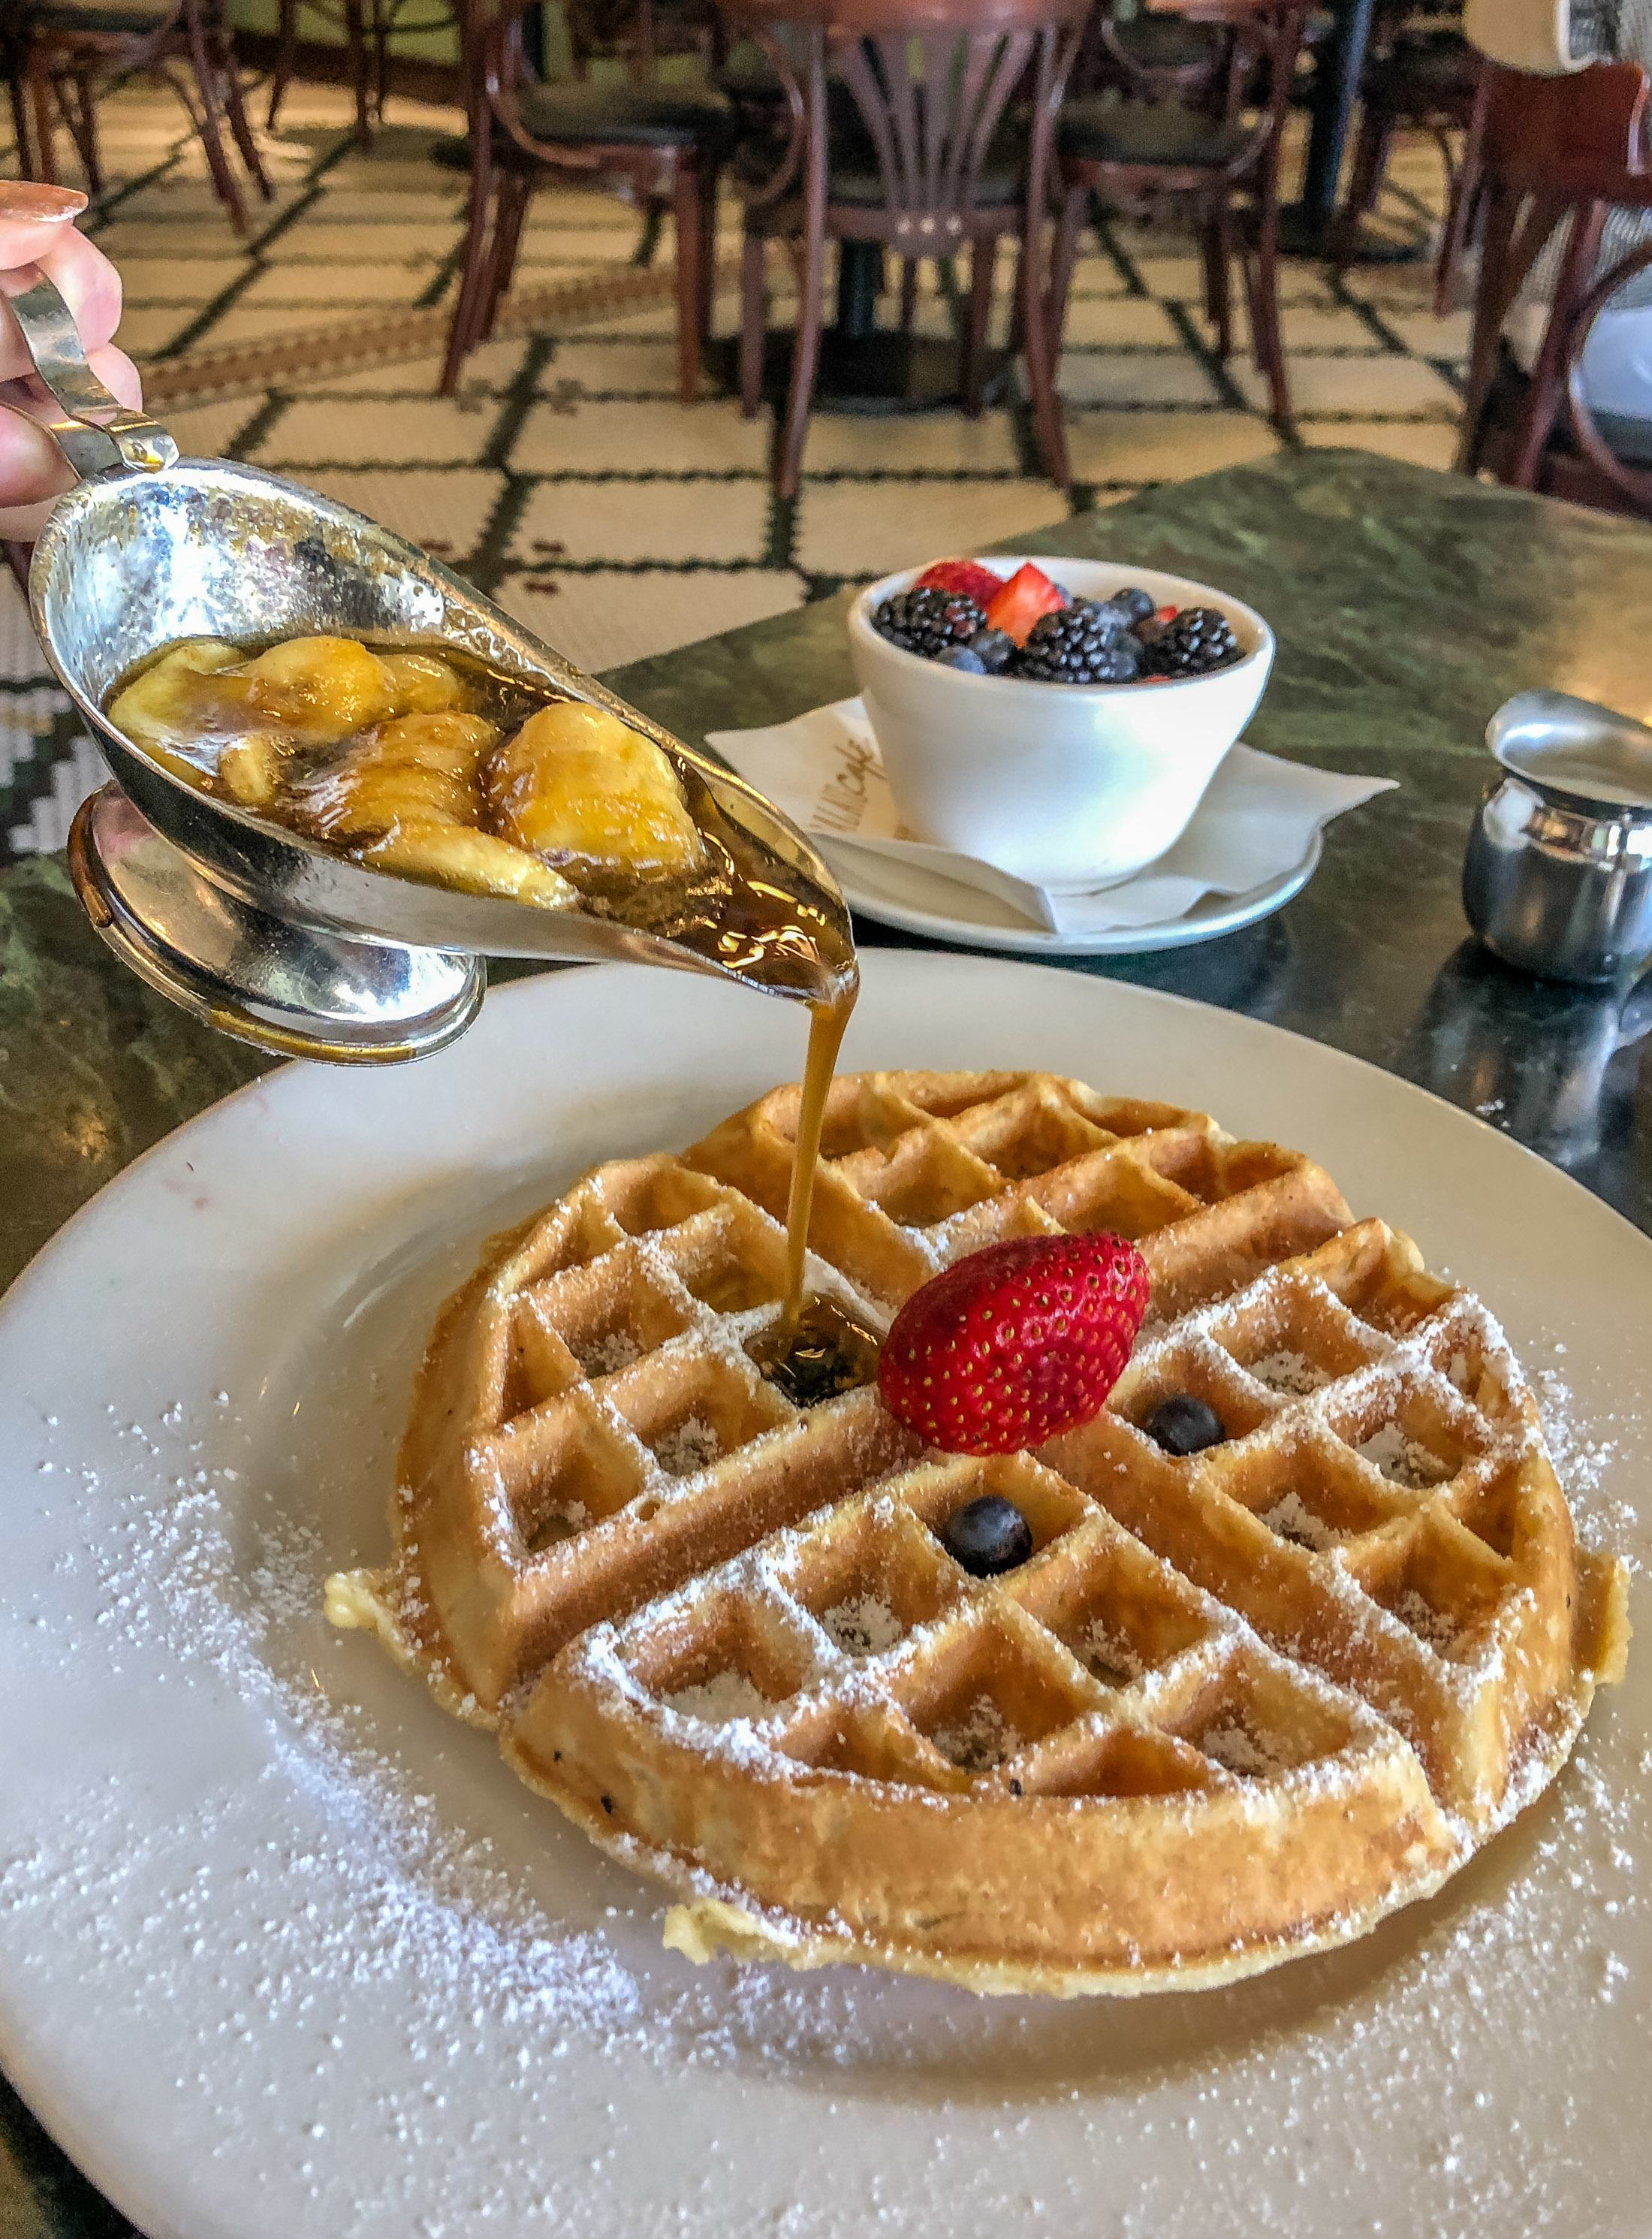 Palace Cafe in New Orleans serves bananas foster waffles.